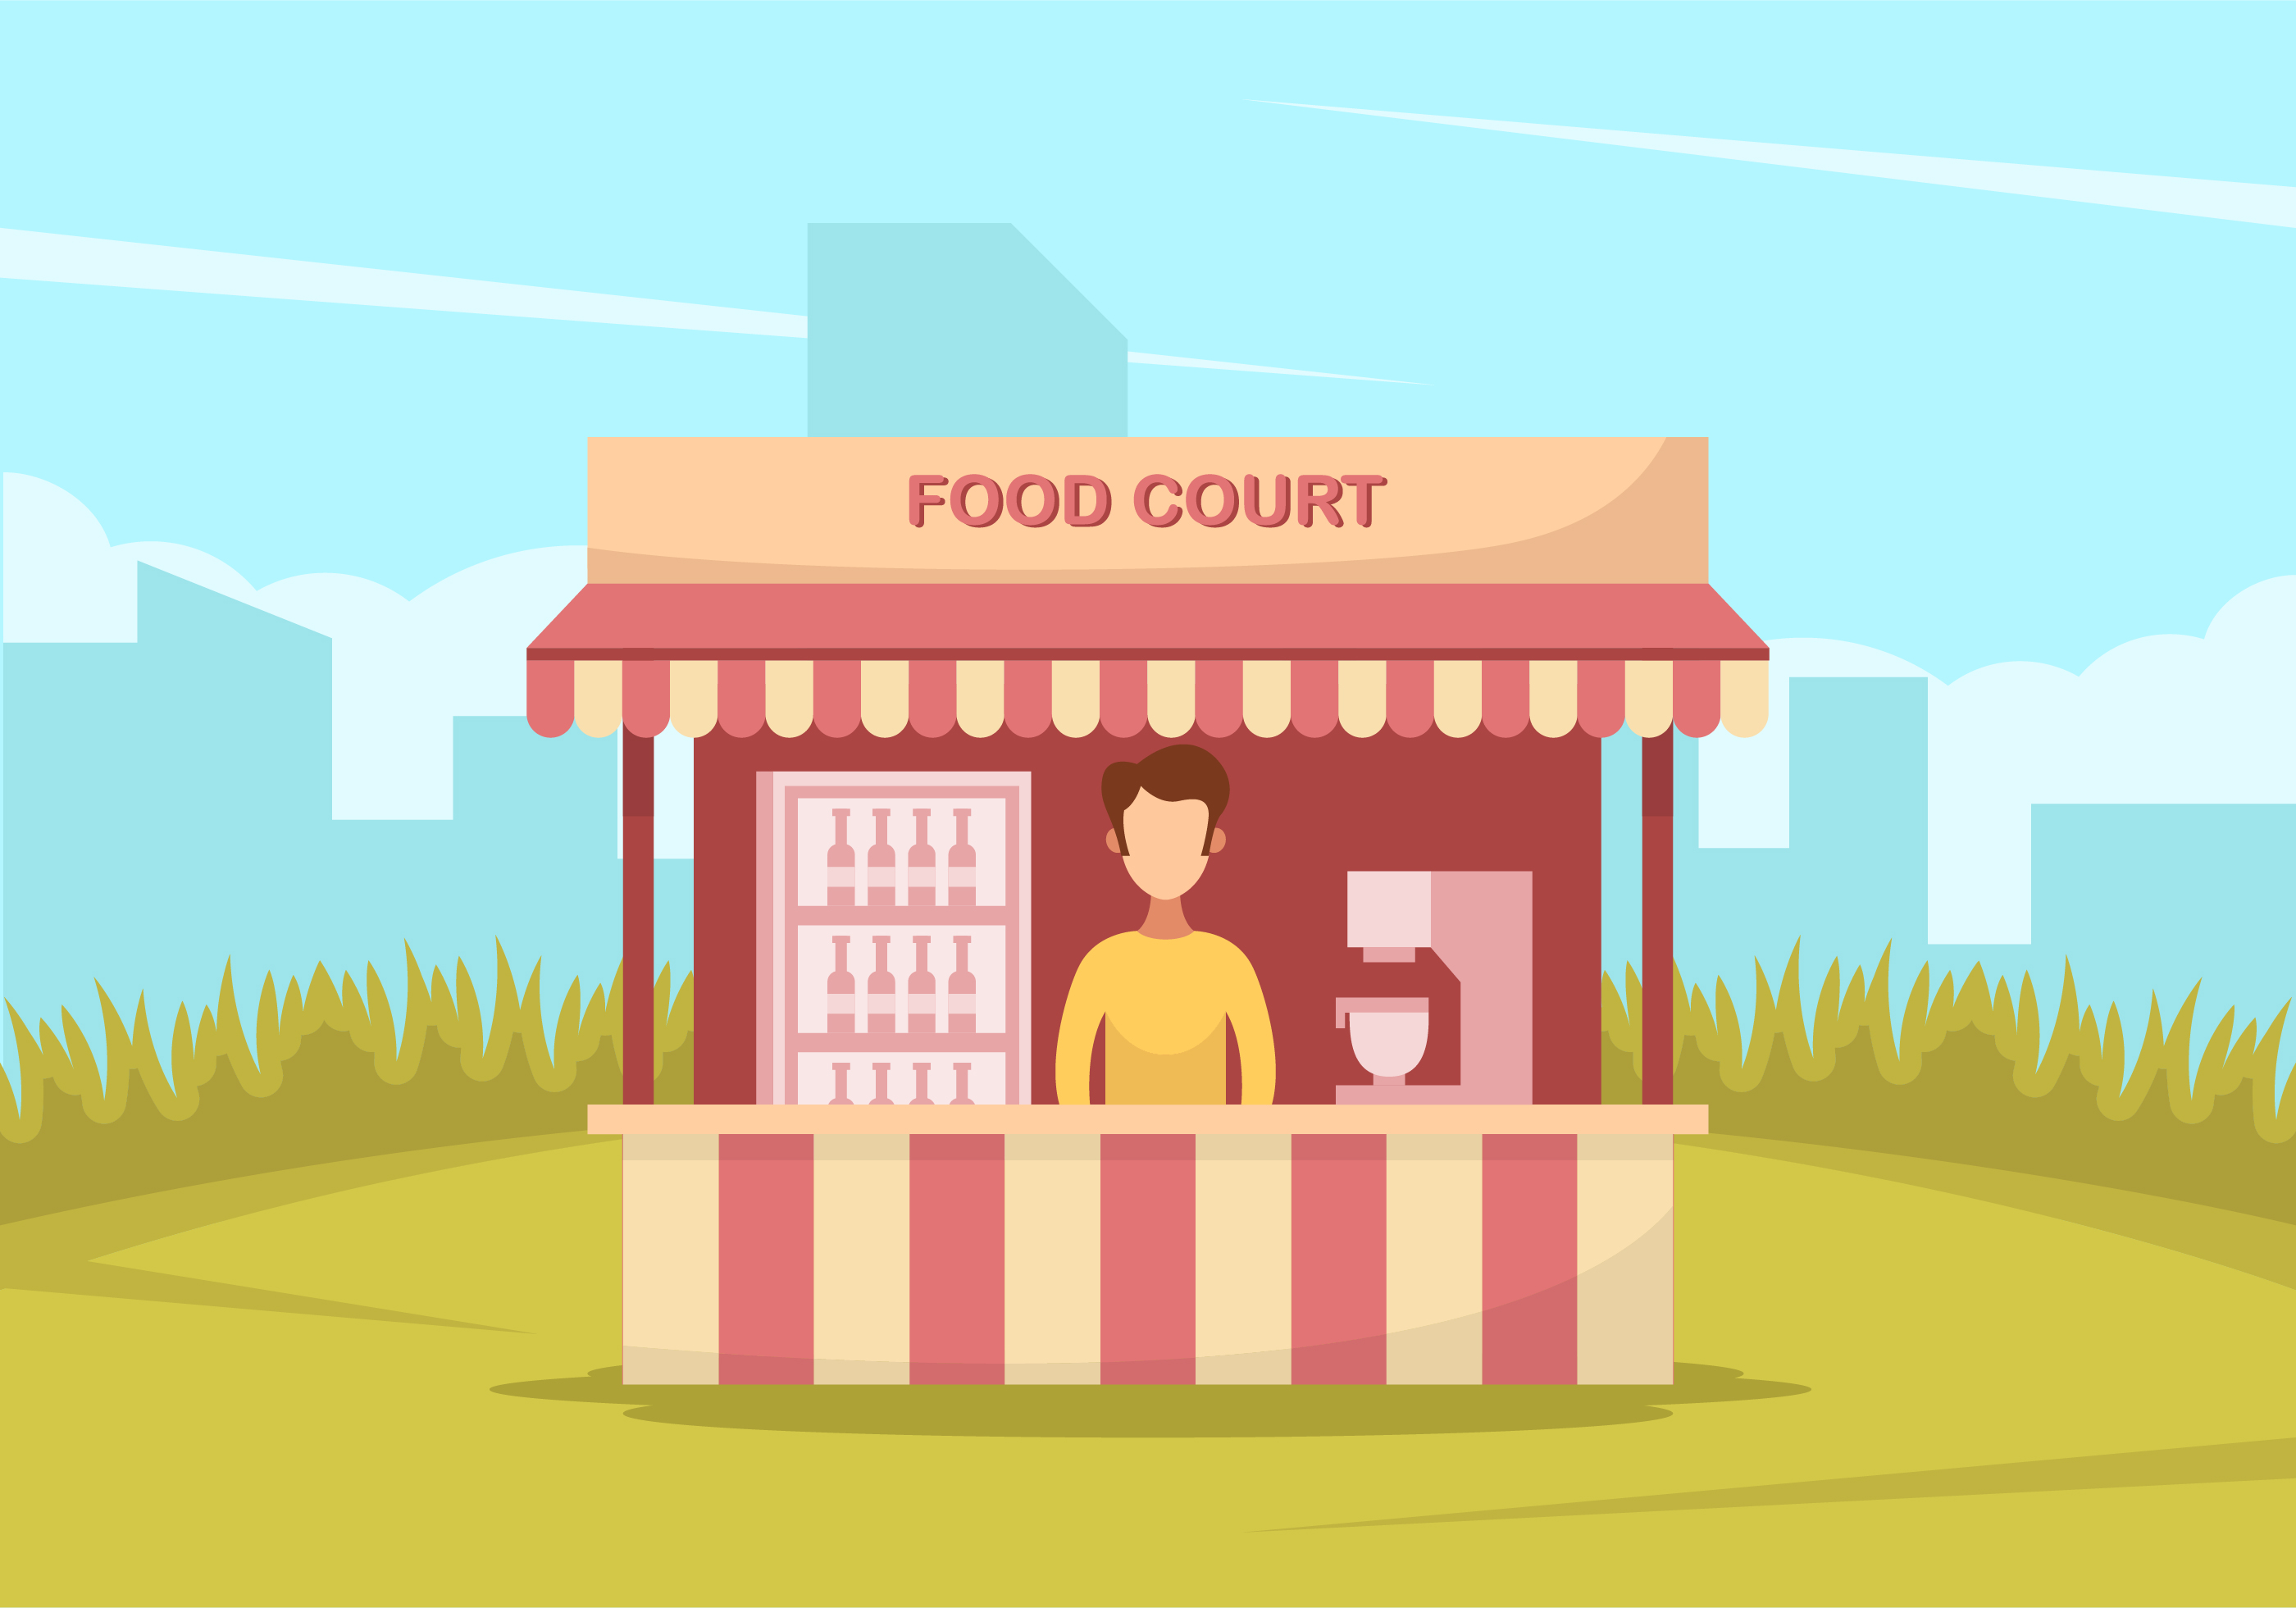 Exhibition Stall Design Vector Free Download : A man in red food court download free vector art stock